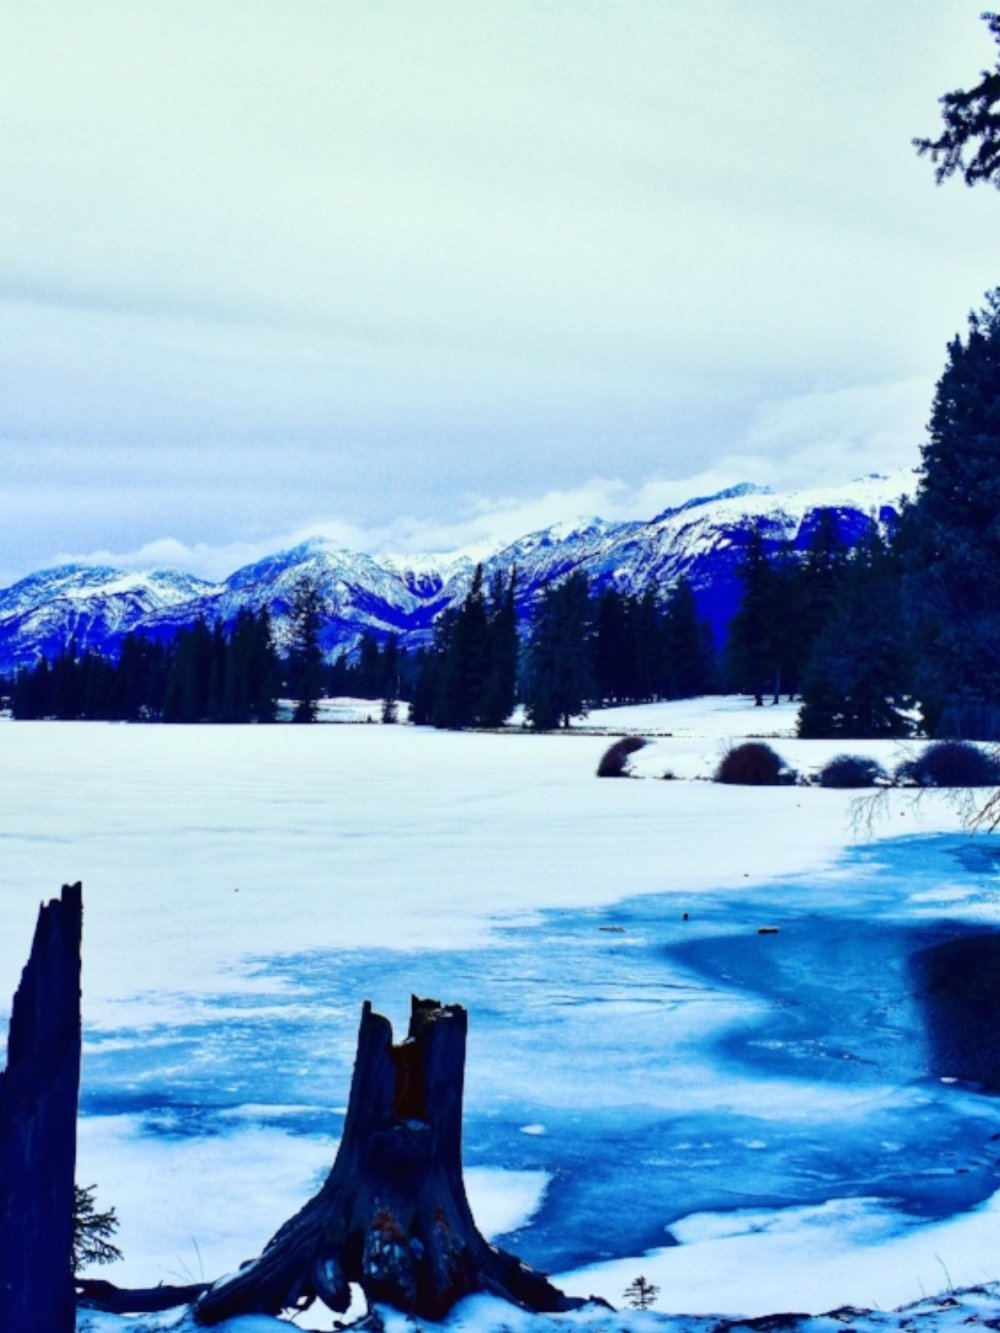 So many stunning winter walks around the lakes in Jasper National Park